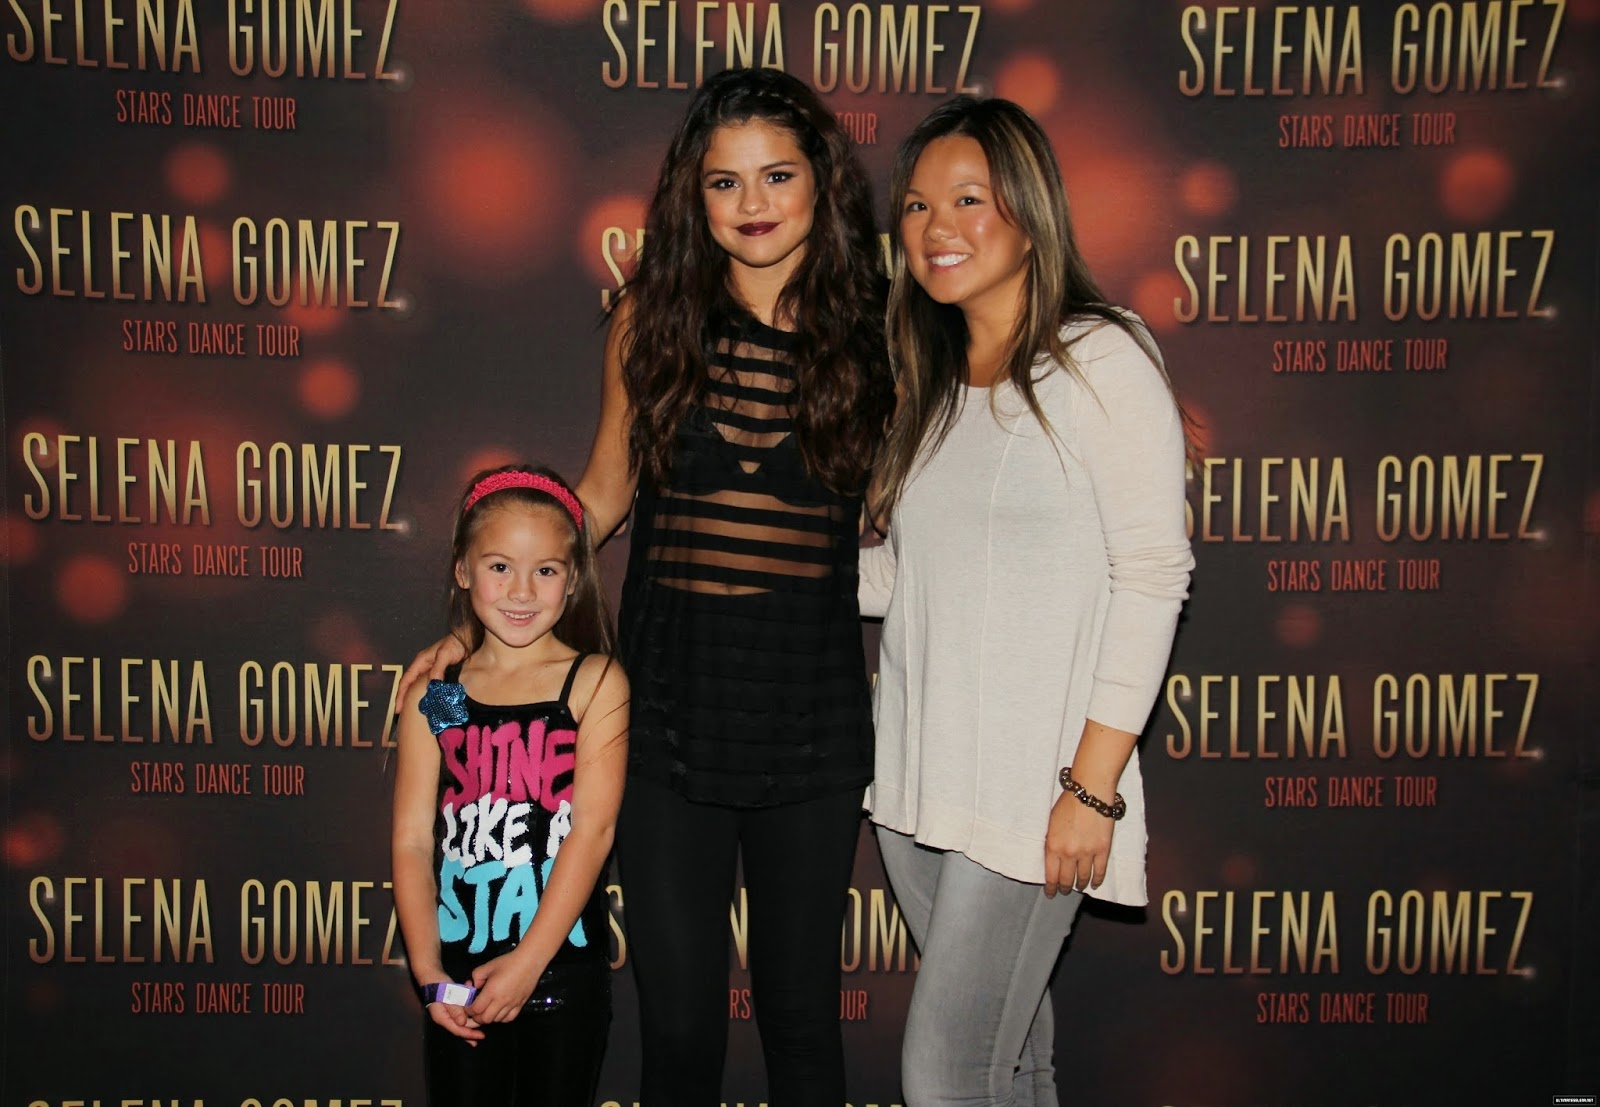 selena gomez meet and greet 2013 dodge